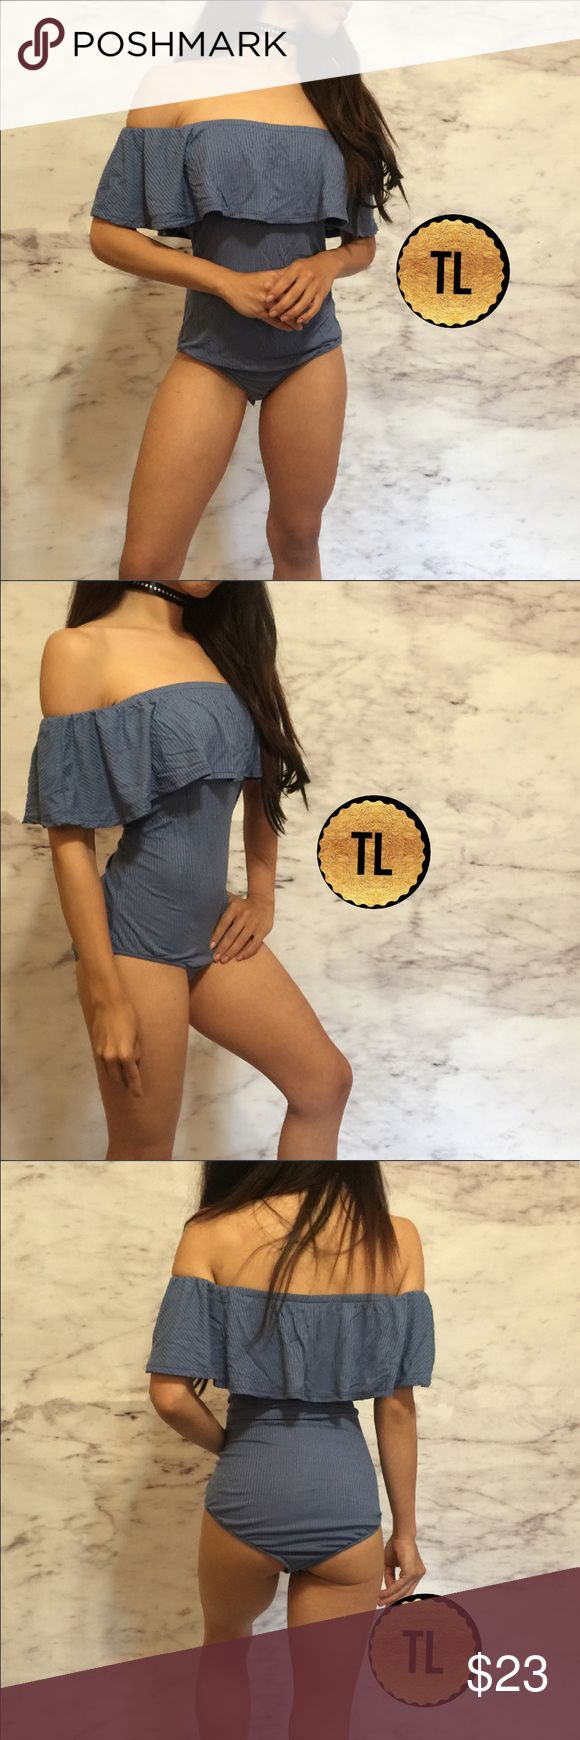 """Off shoulder ruffle sleeve rib knit hot bodysuit •brand new  •ships tomorrow •brand : TIMELESS look boutique  •no trades  •true to size     Lovely to pair with a hot pair of bottoms for an activity,  w boyfriend jeans for a cool instagram or street style look  Model: goguios in insta 📸 (account manager) modeling XS  Please visit """"Closet Rules"""" for more info about us :) Timeless Look Tops"""